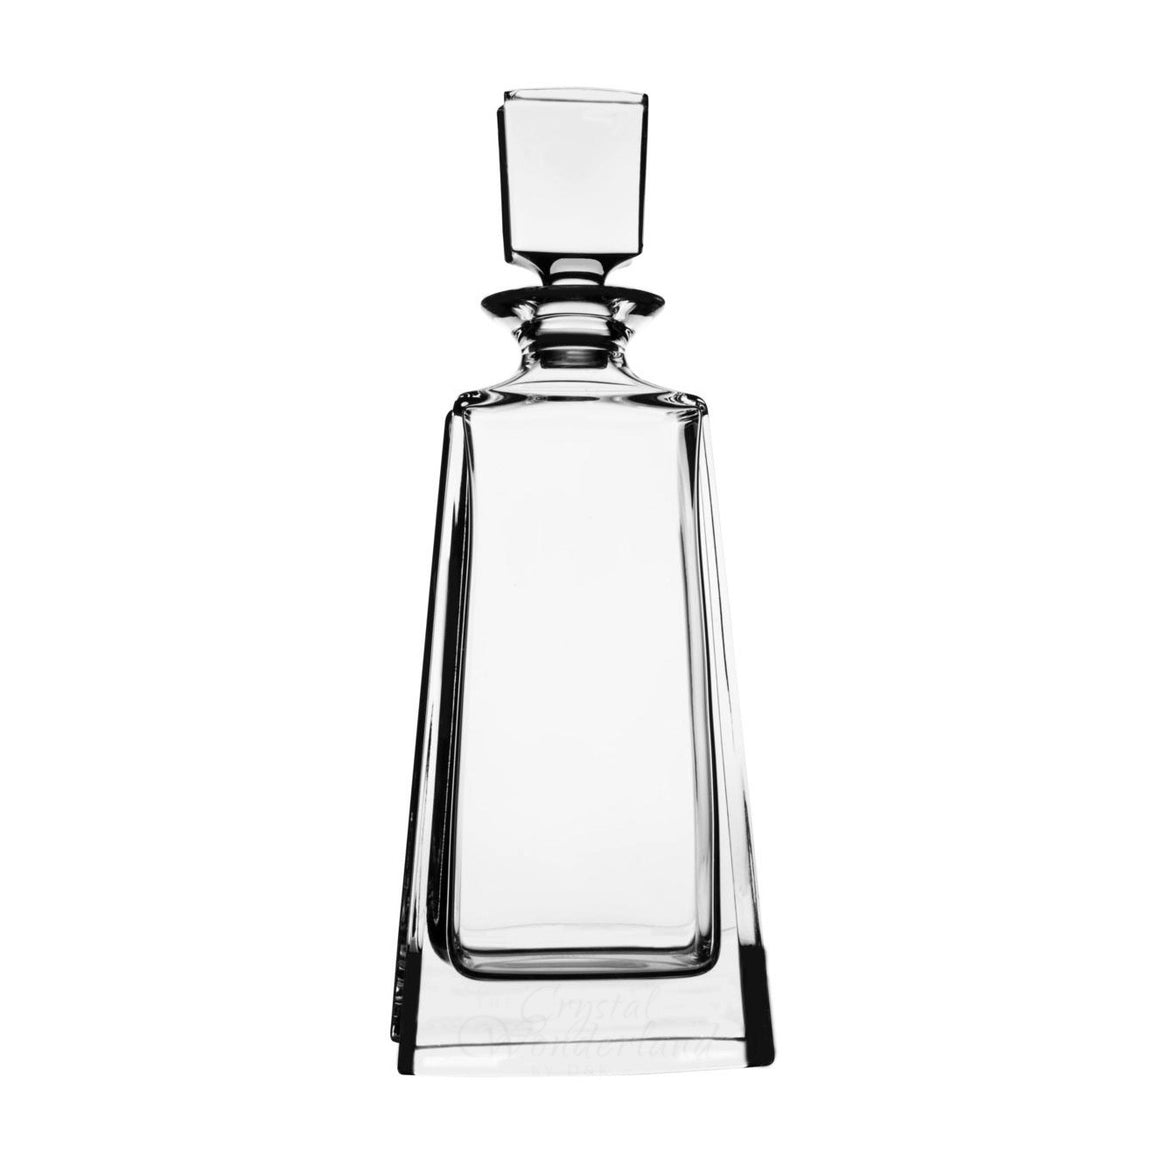 Lucie Crystal Clear Decanter, 23.7 oz - The Crystal Wonderland